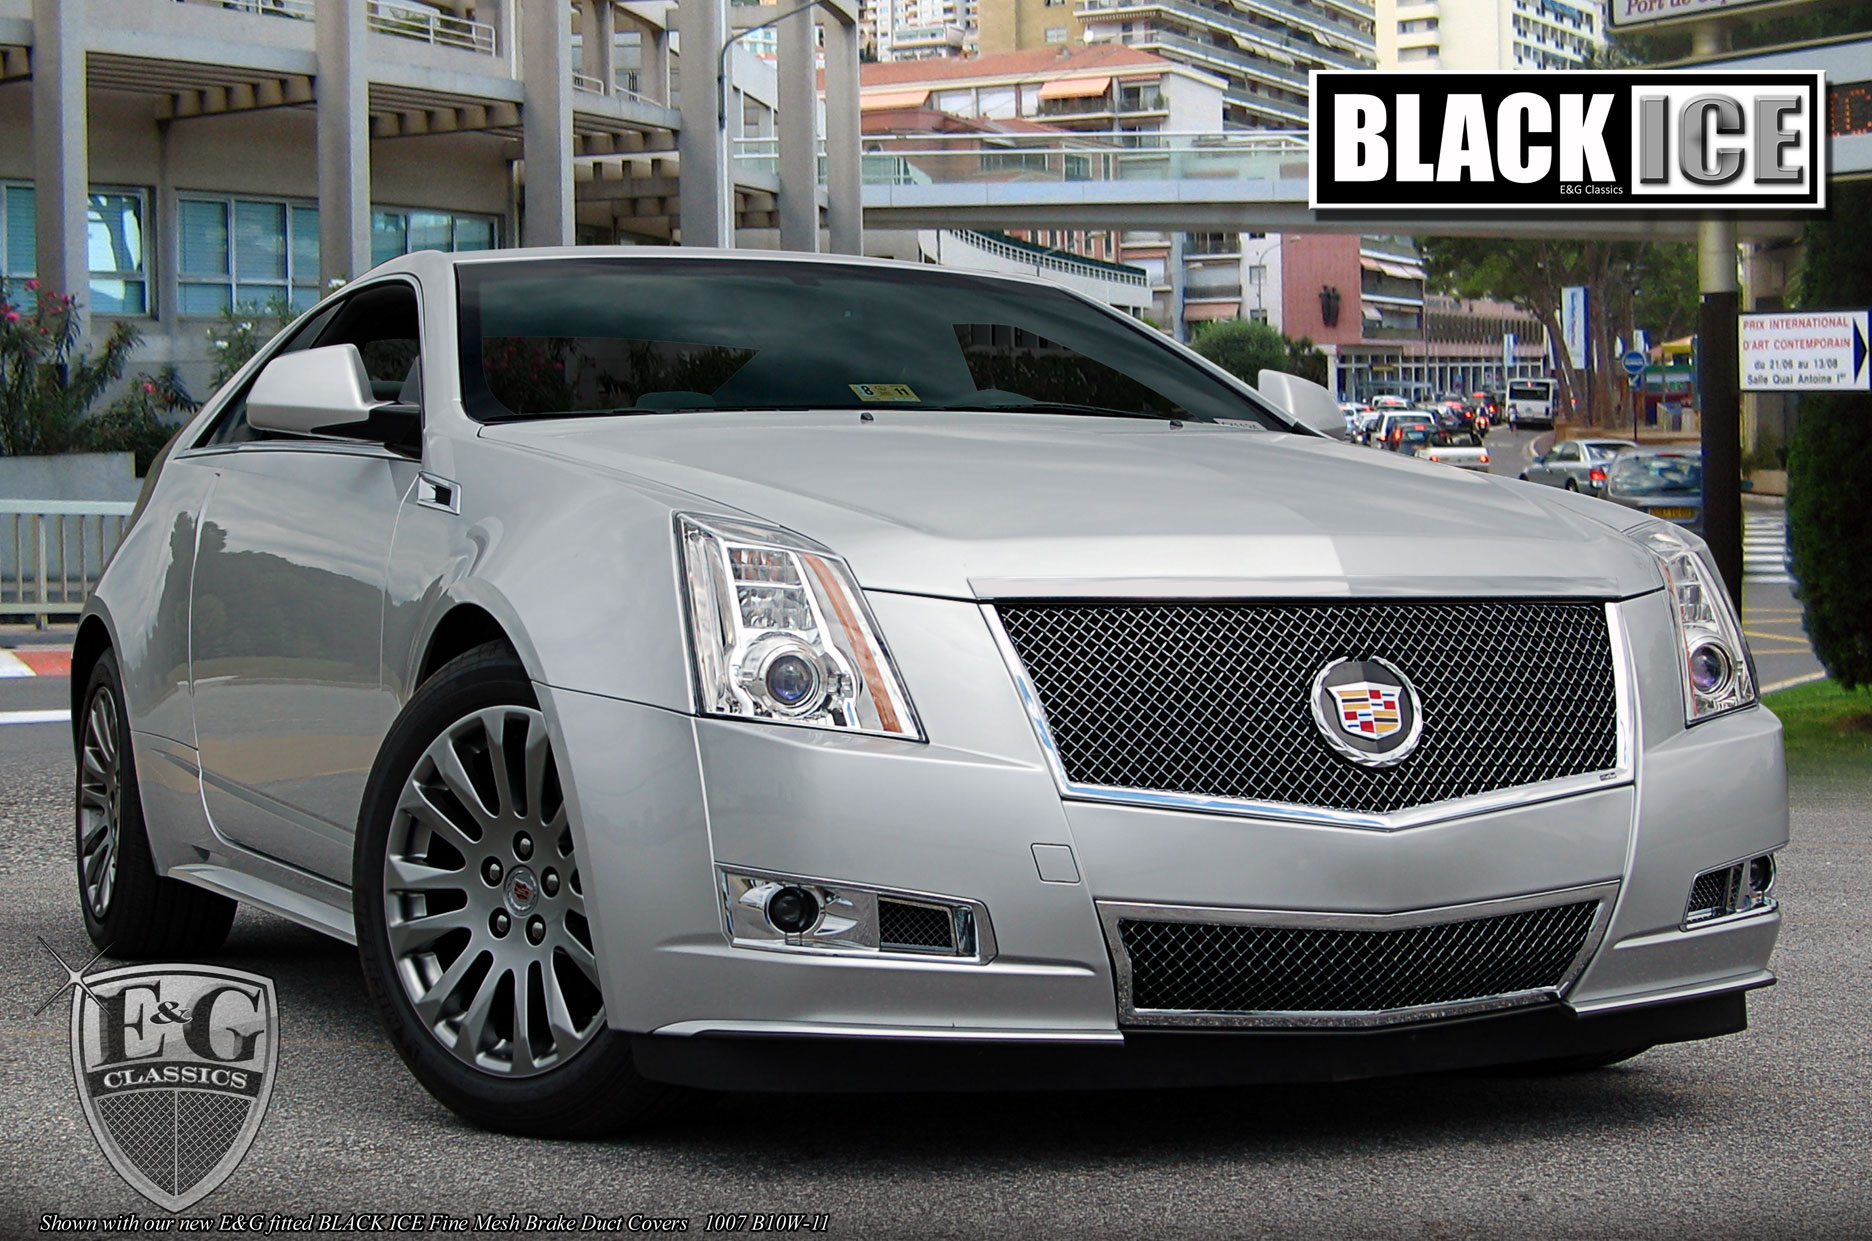 E Amp G Classics Cadillac Cts Grille Wing Body Kit Wheel